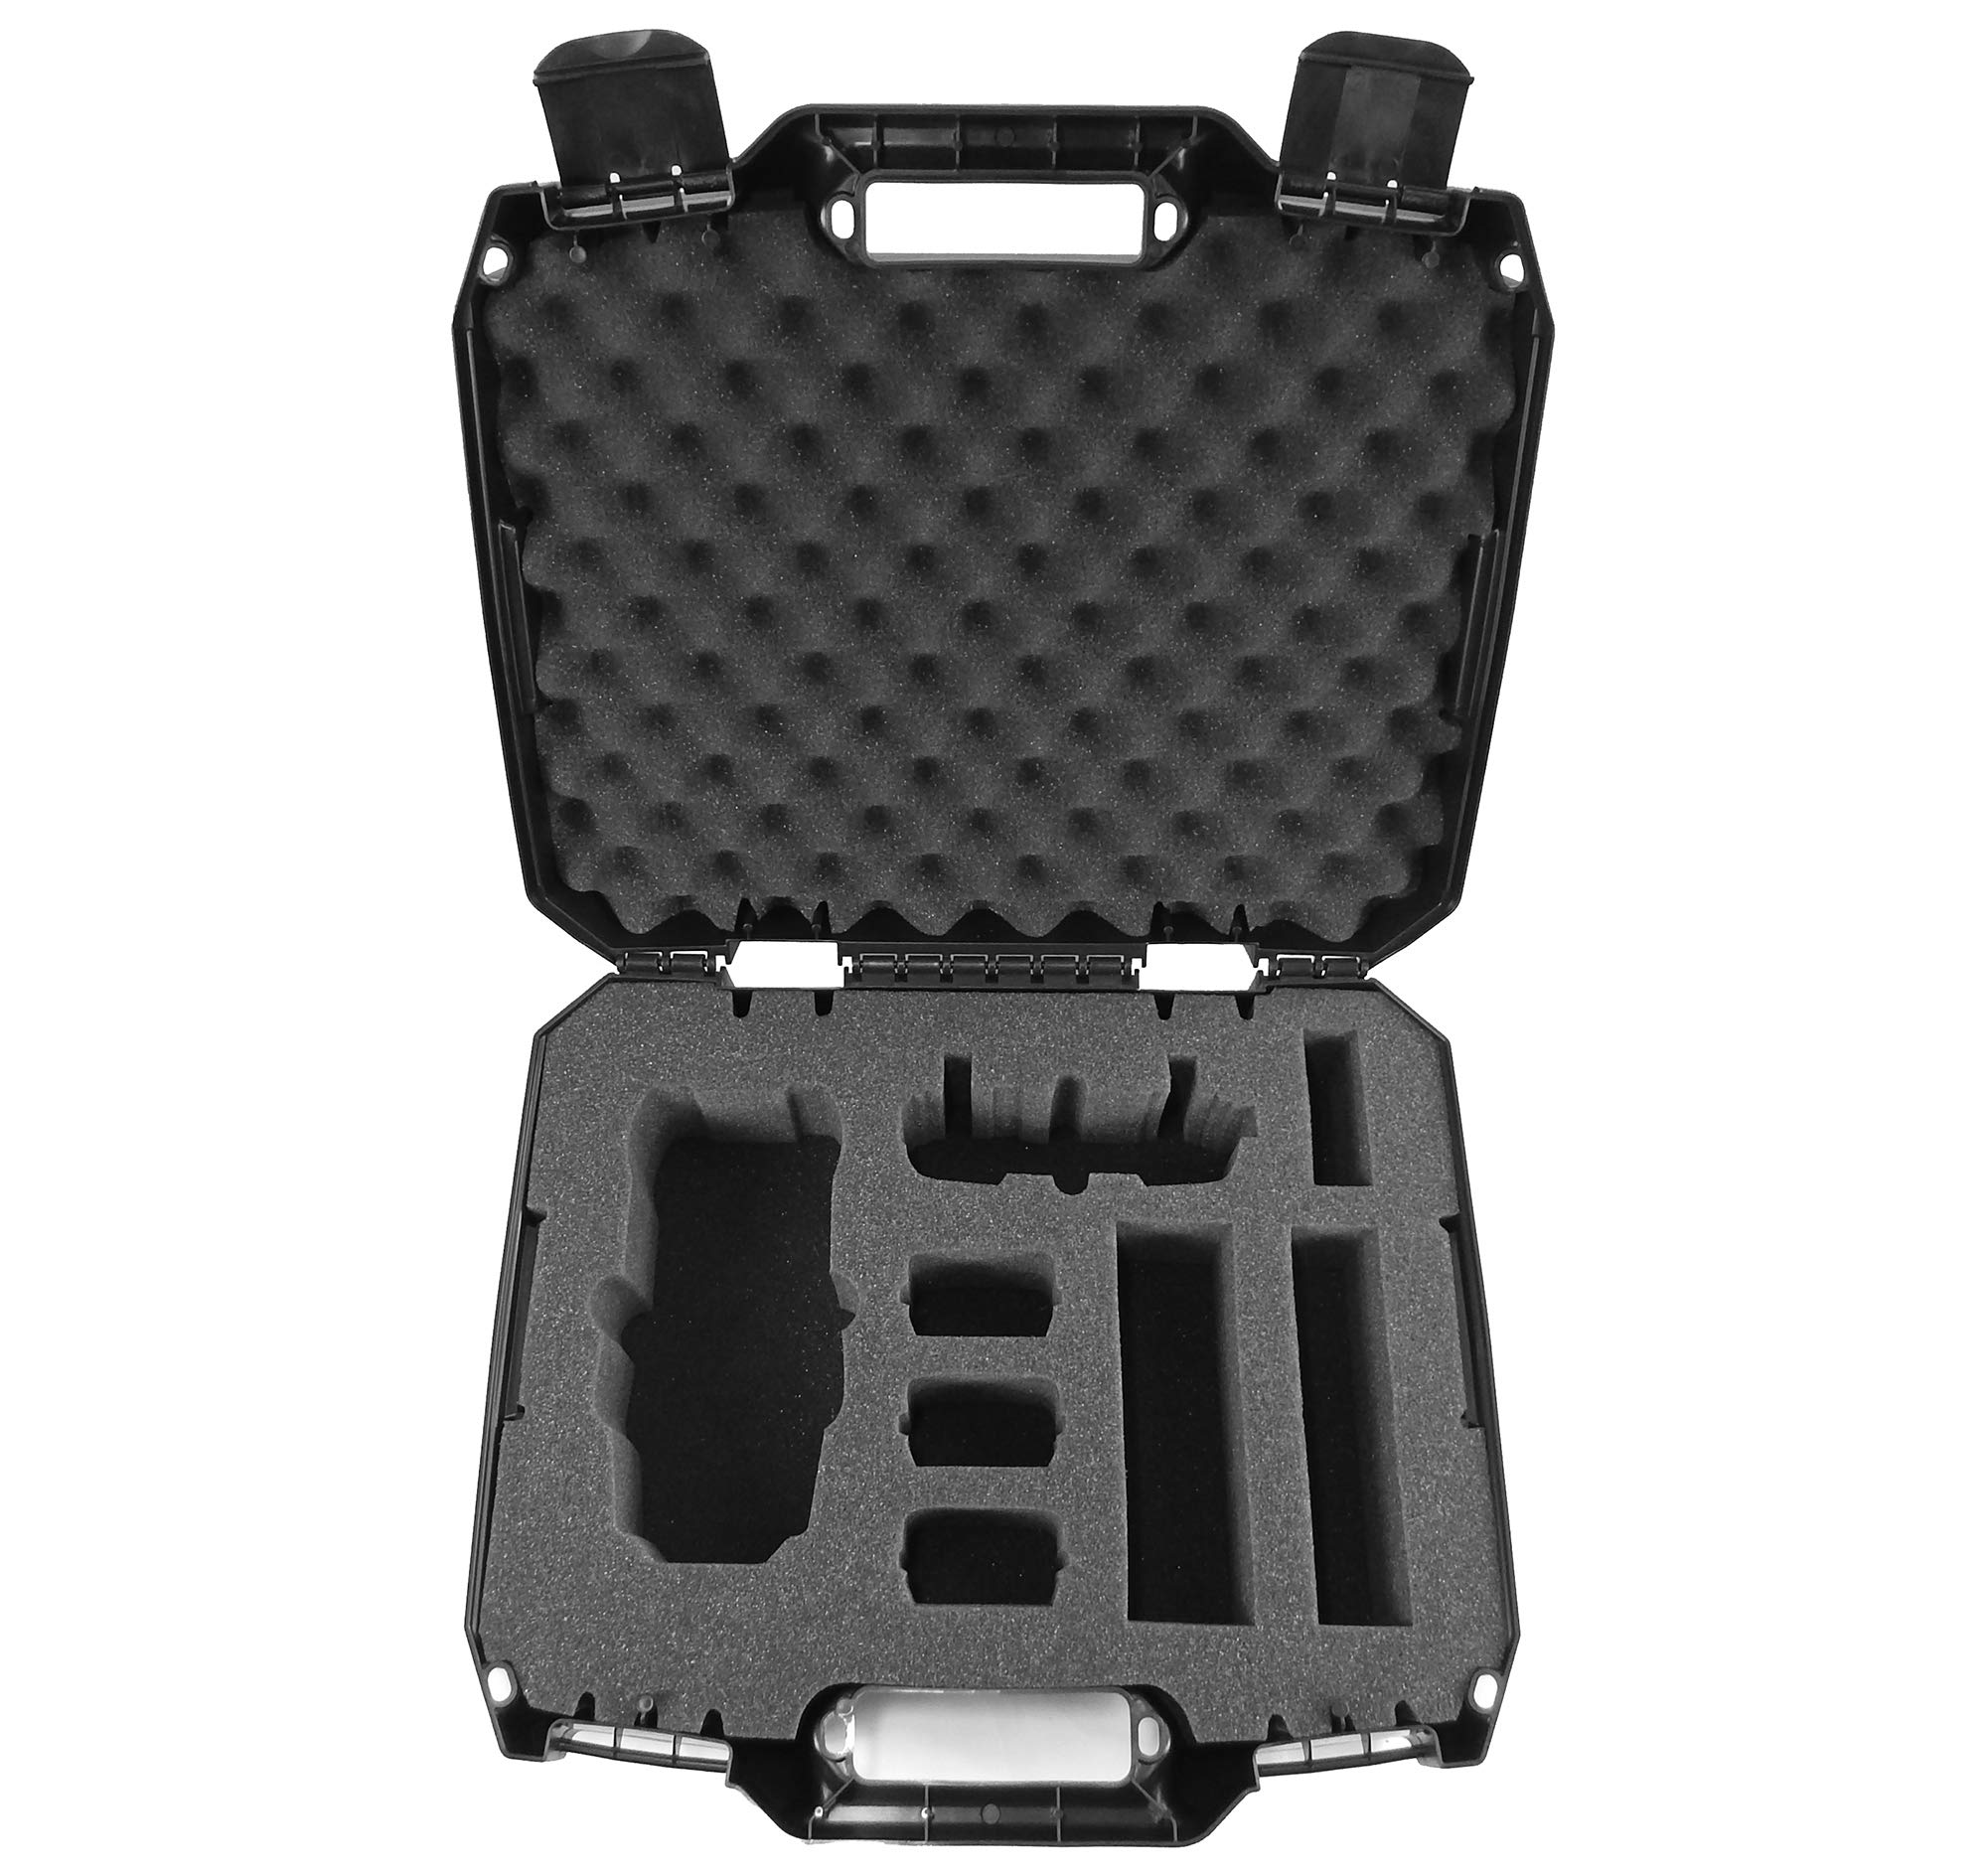 DRONESAFE Rugged Mini Drone Carry Case Organizer With Customizable Foam – Protect DJI Mavic Pro Foldable Drone Combo and Accessories Such as Remote Control , Extra Batteries , Propellers and More